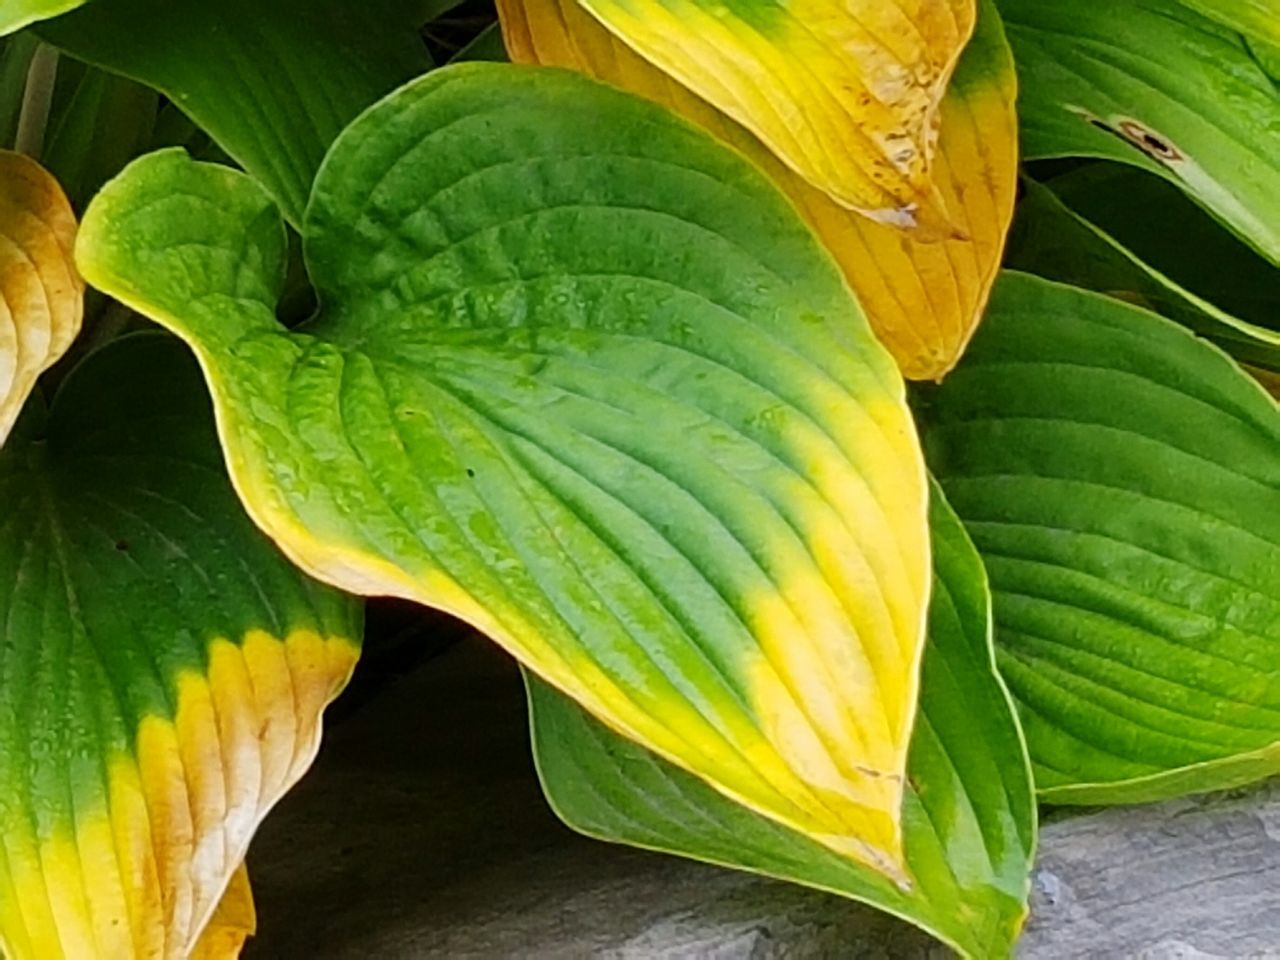 Hosta leaves Green And Yellow Leaves Beauty In Nature Outdoors Autumn Leafs Rainy Day Wet Leaf Nature Plant Lmage Of The Week EyeEm Gallery EyeEm Best Shots - Nature EyeEm Market © Eyeem Market Team Eyeemphotography Garden Photography Mobile Photography Water RainDrop Eyeem Collection Macro Photography Eyeem Canada Eyeem Marketplace Eye4photography  EyeEm Best Shots